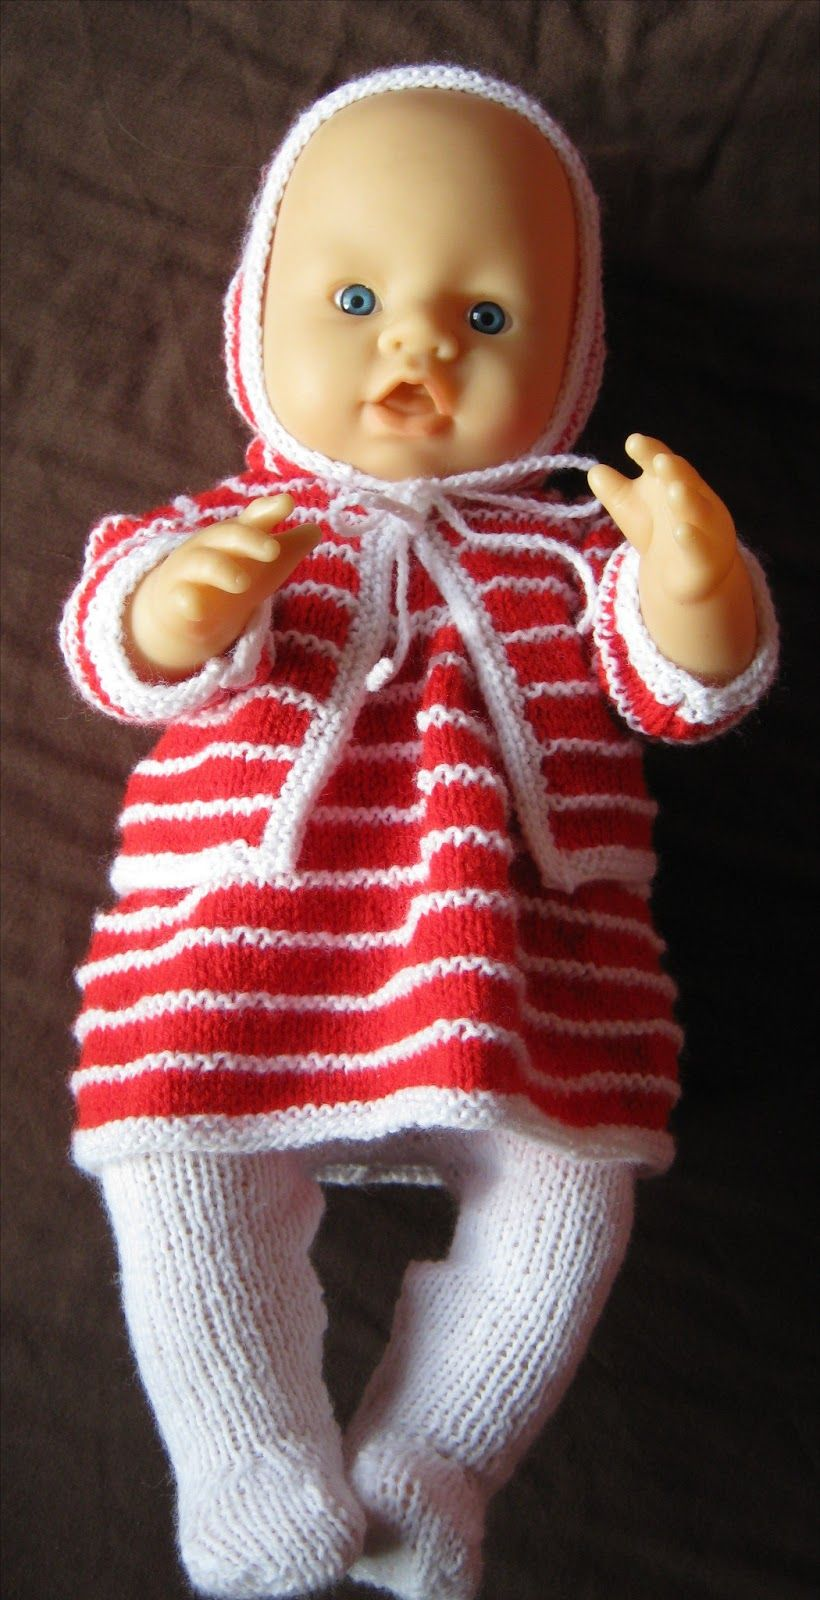 Sixties Spirit: Outfits for 16 inch baby doll - part 3